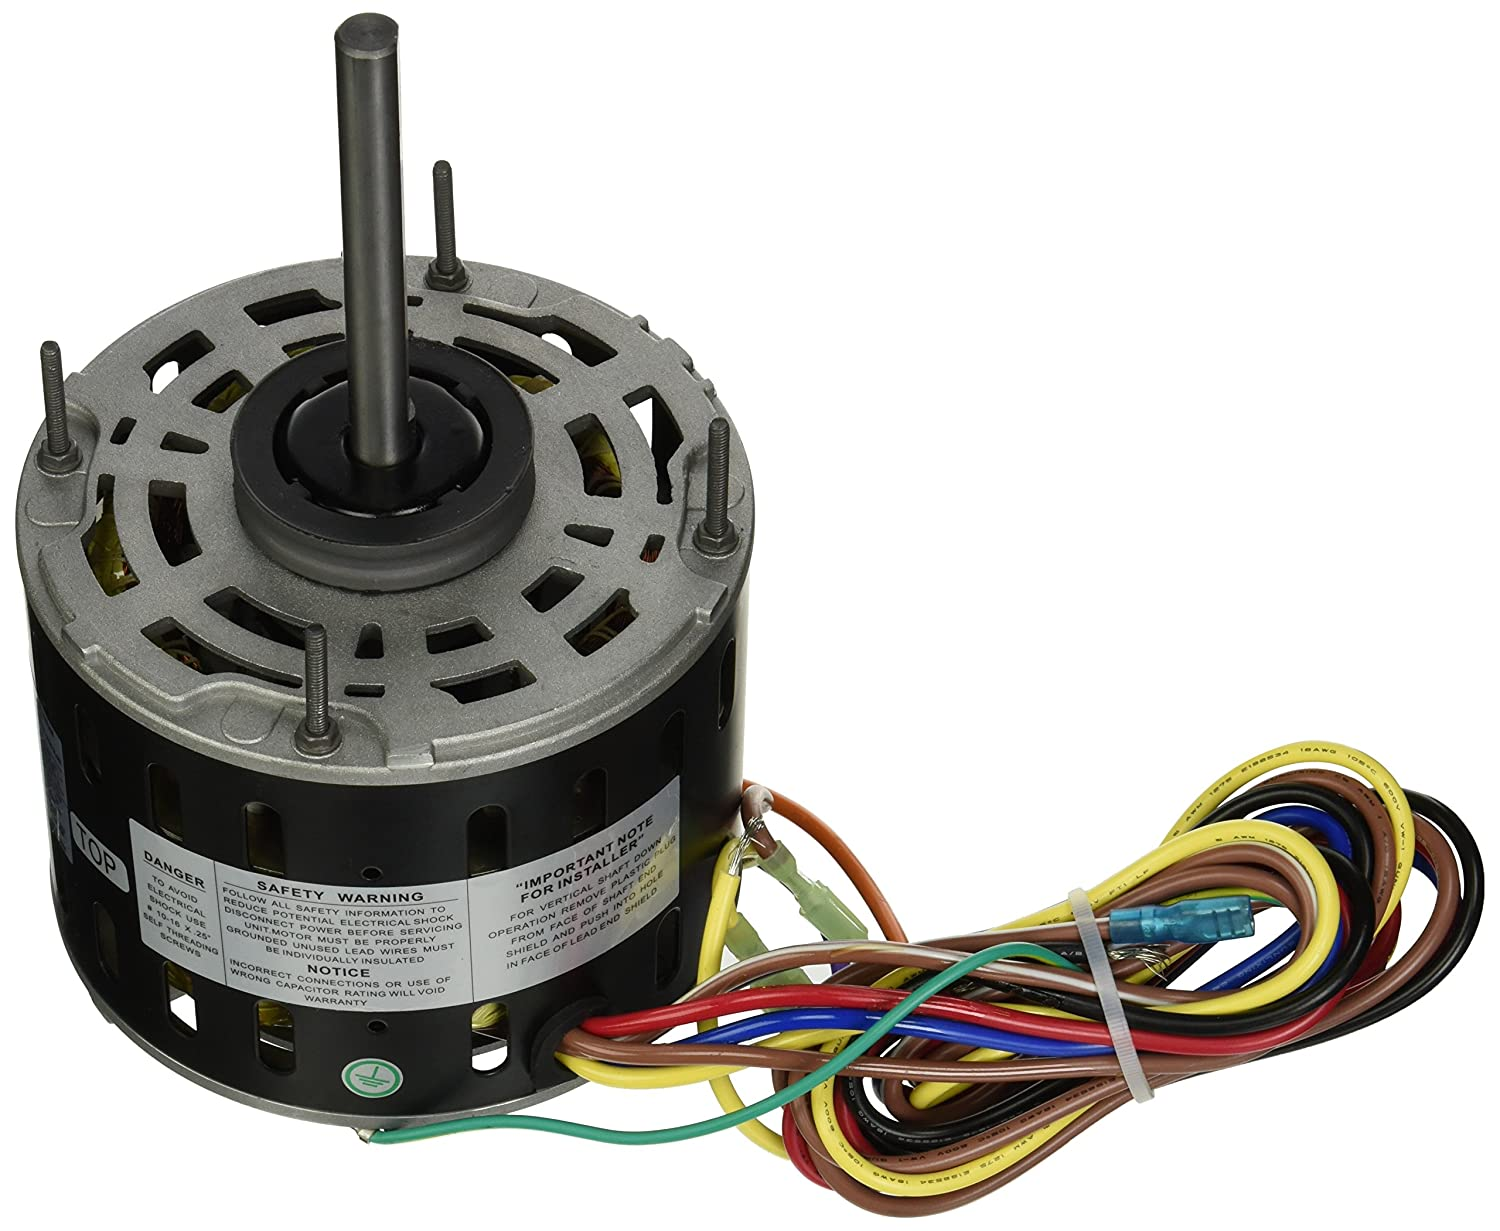 Amazon.com: MARS - Motors & Armatures 10585 1/3 hp 115V Direct Drive Blower  Motor: Home Improvement